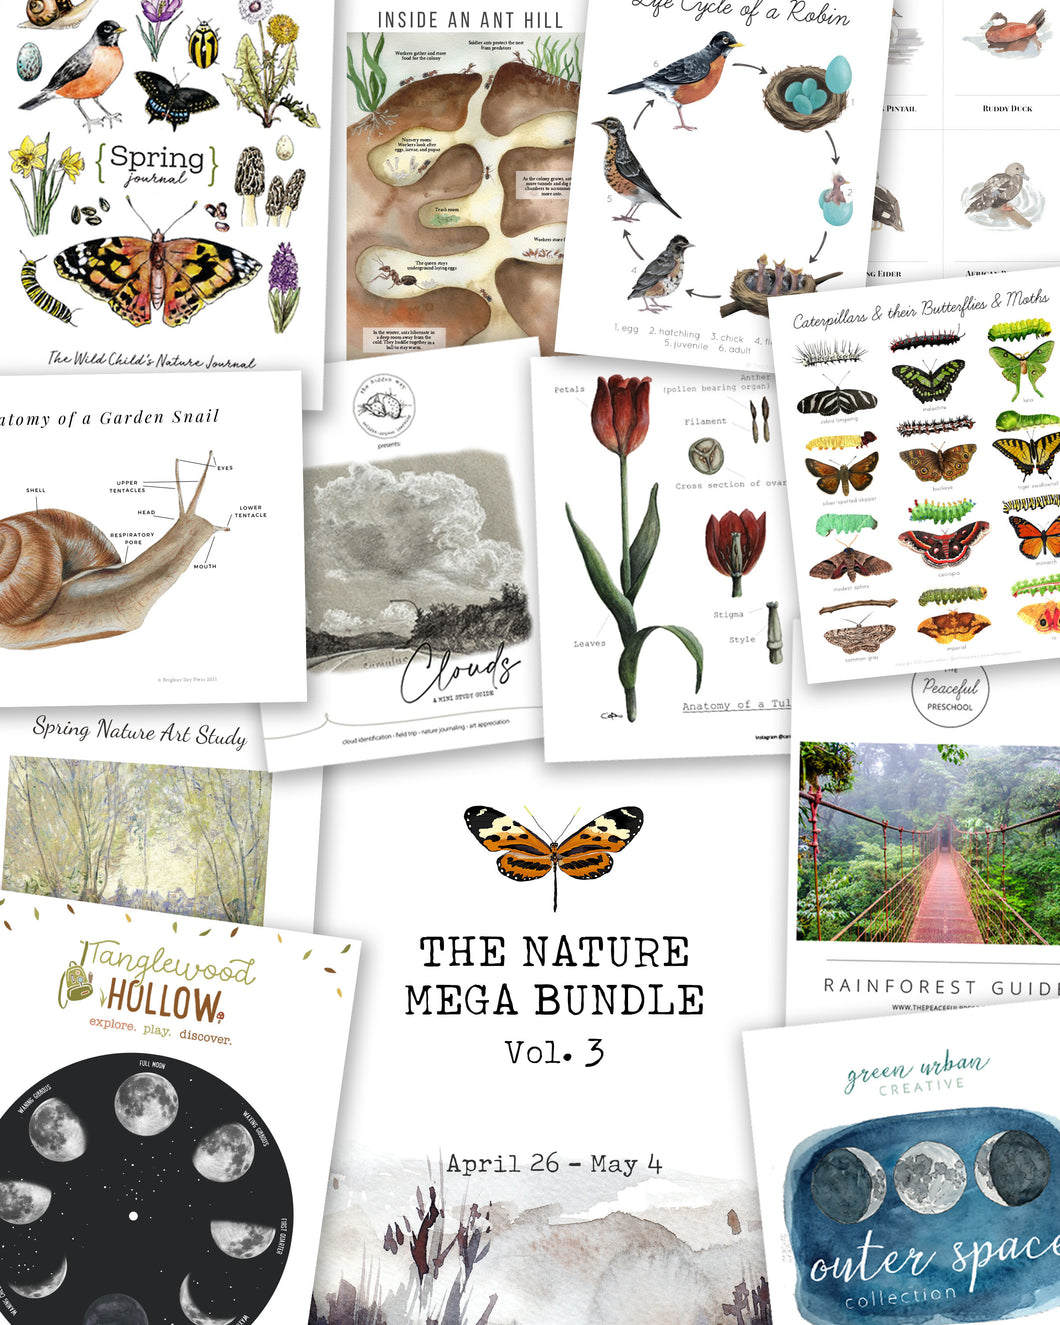 THE NATURE MEGA BUNDLE - VOL. 3